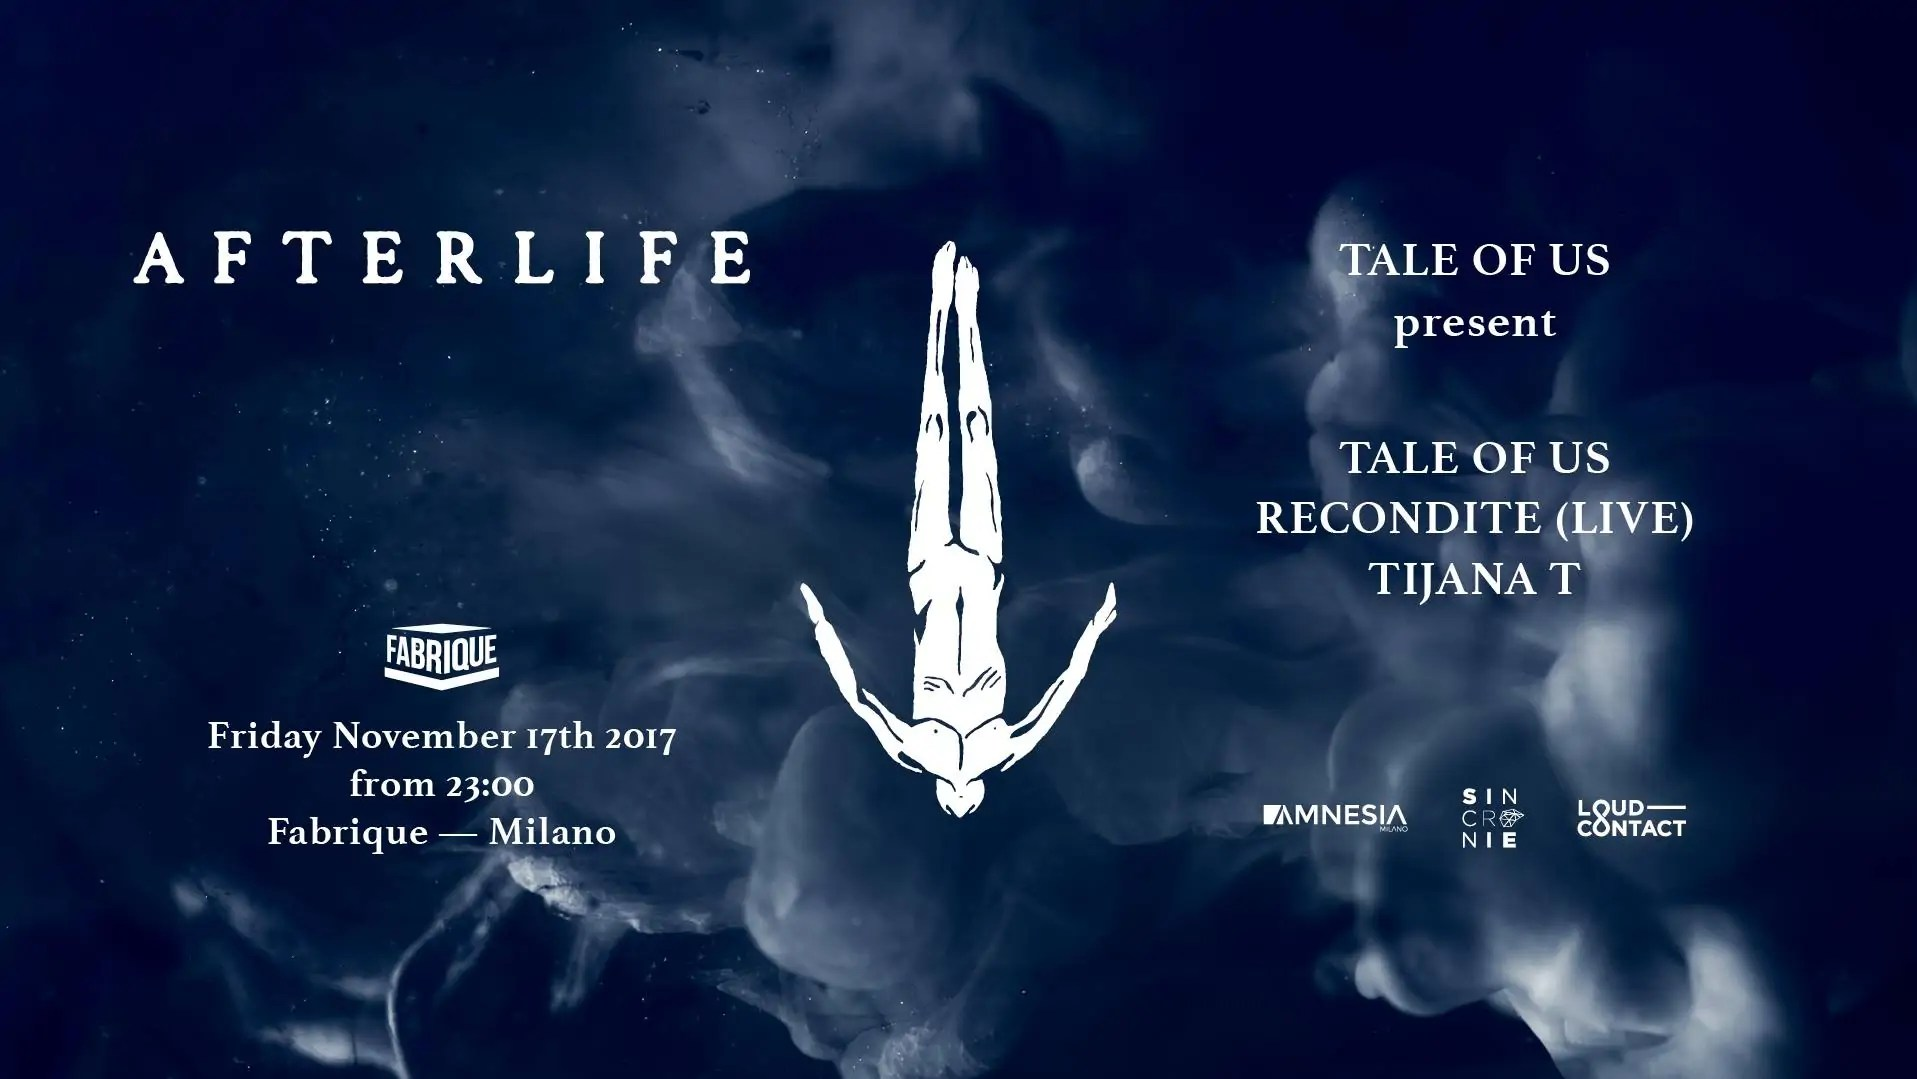 AfterLife – Fabrique Milano – 17 Novembre 2017